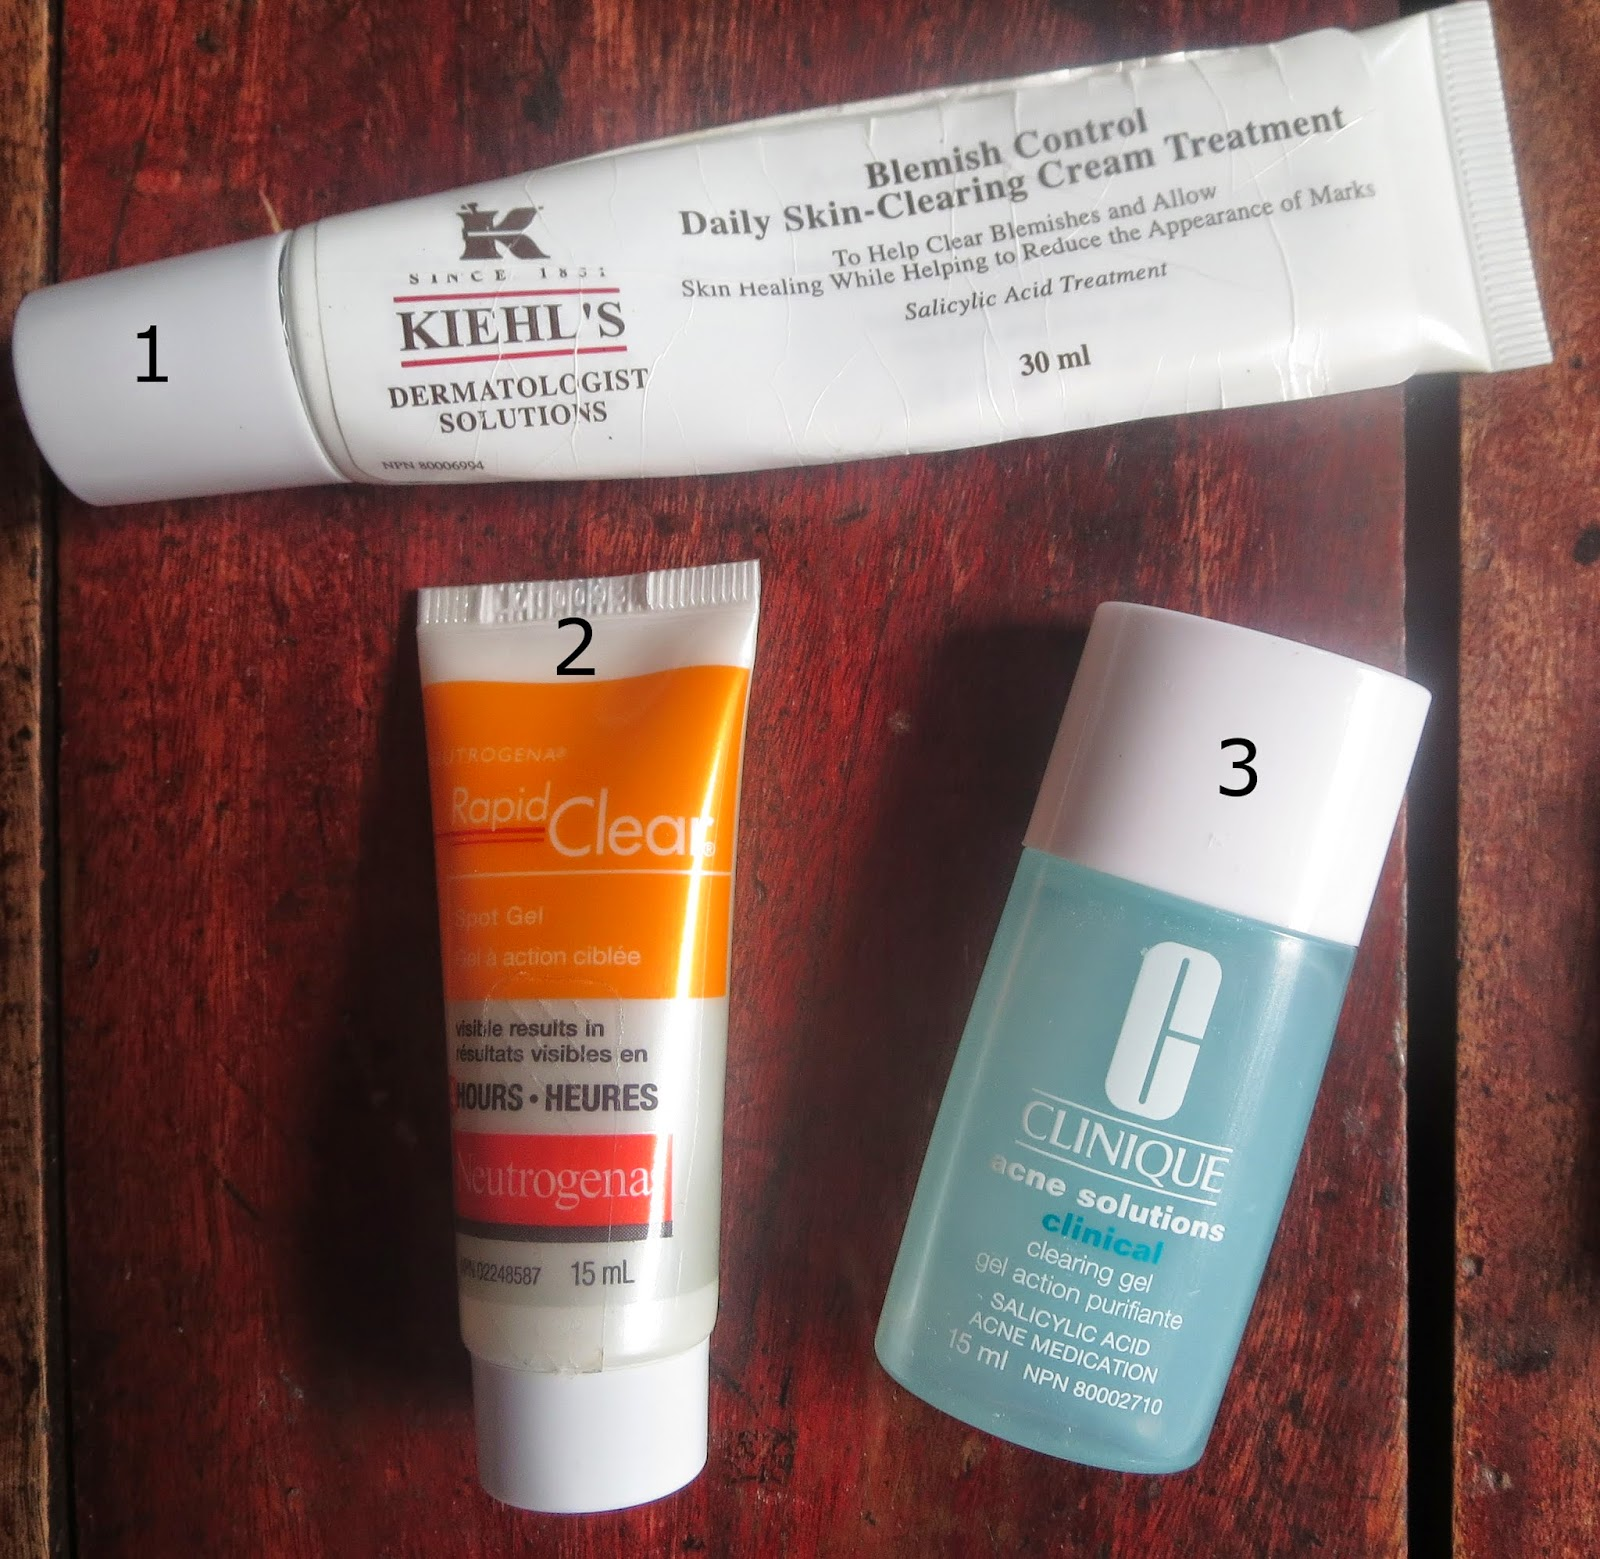 a picture of Kiehl's blemish control skin clearing cream, neutrogena rapid clear, clinique acne solutions clearing gel